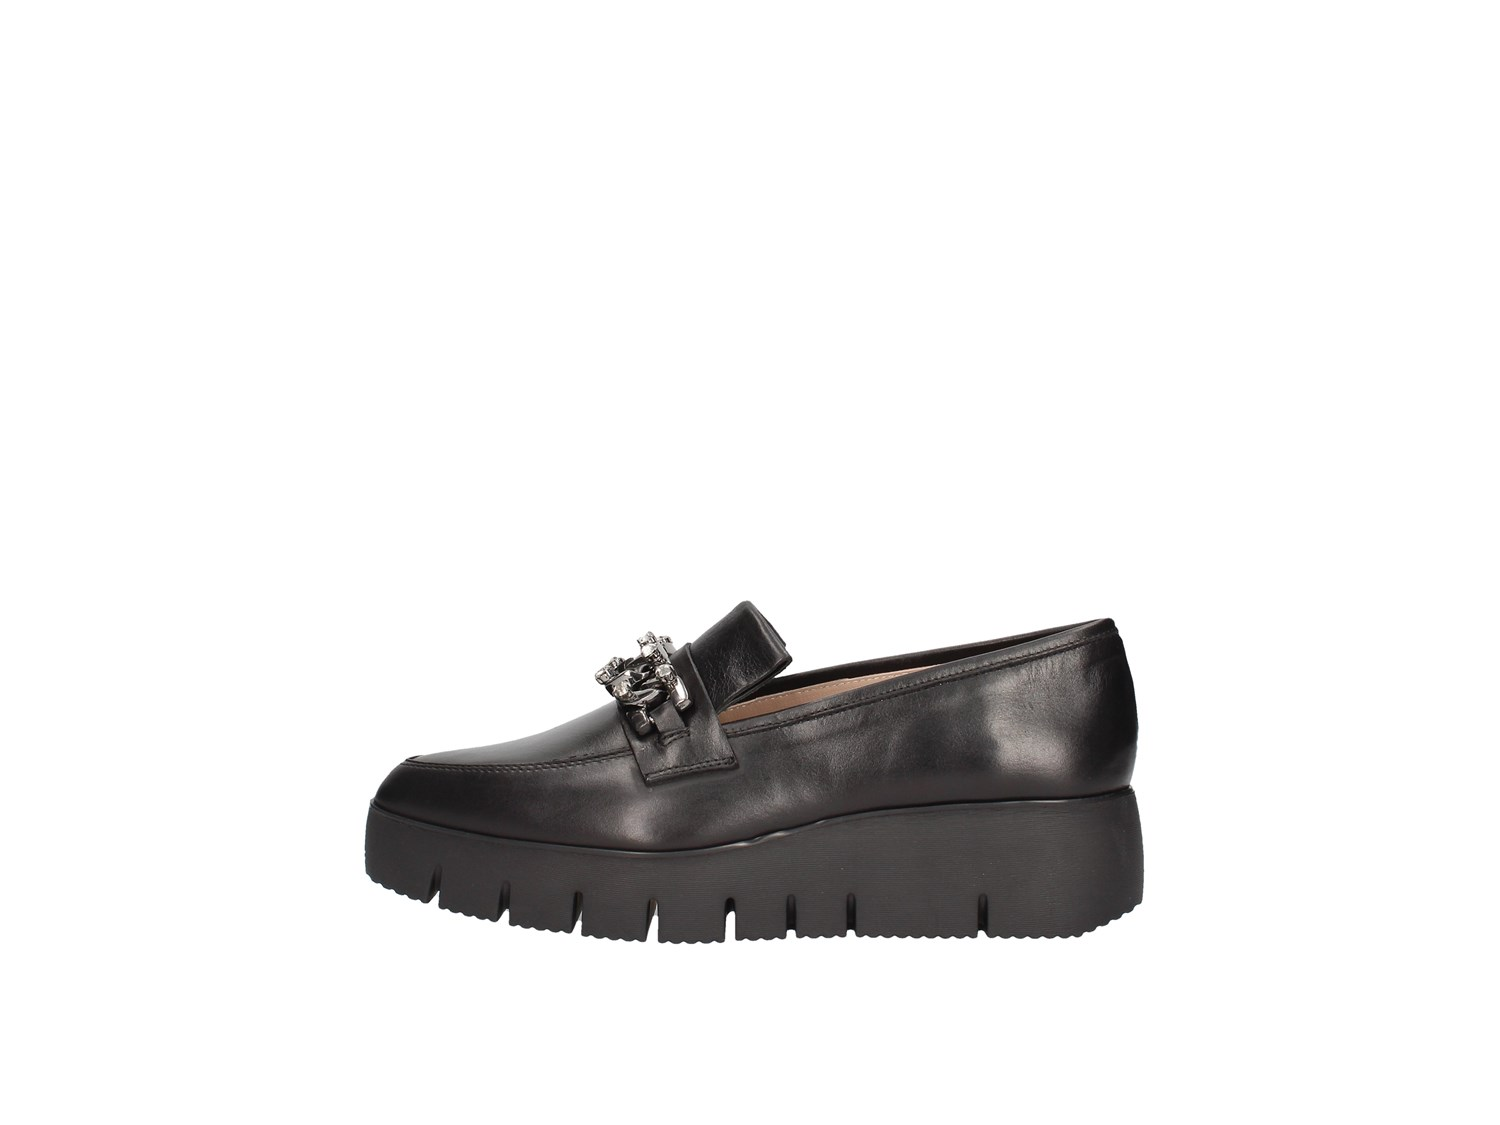 Unisa Chirla Black Shoes Women Moccasin